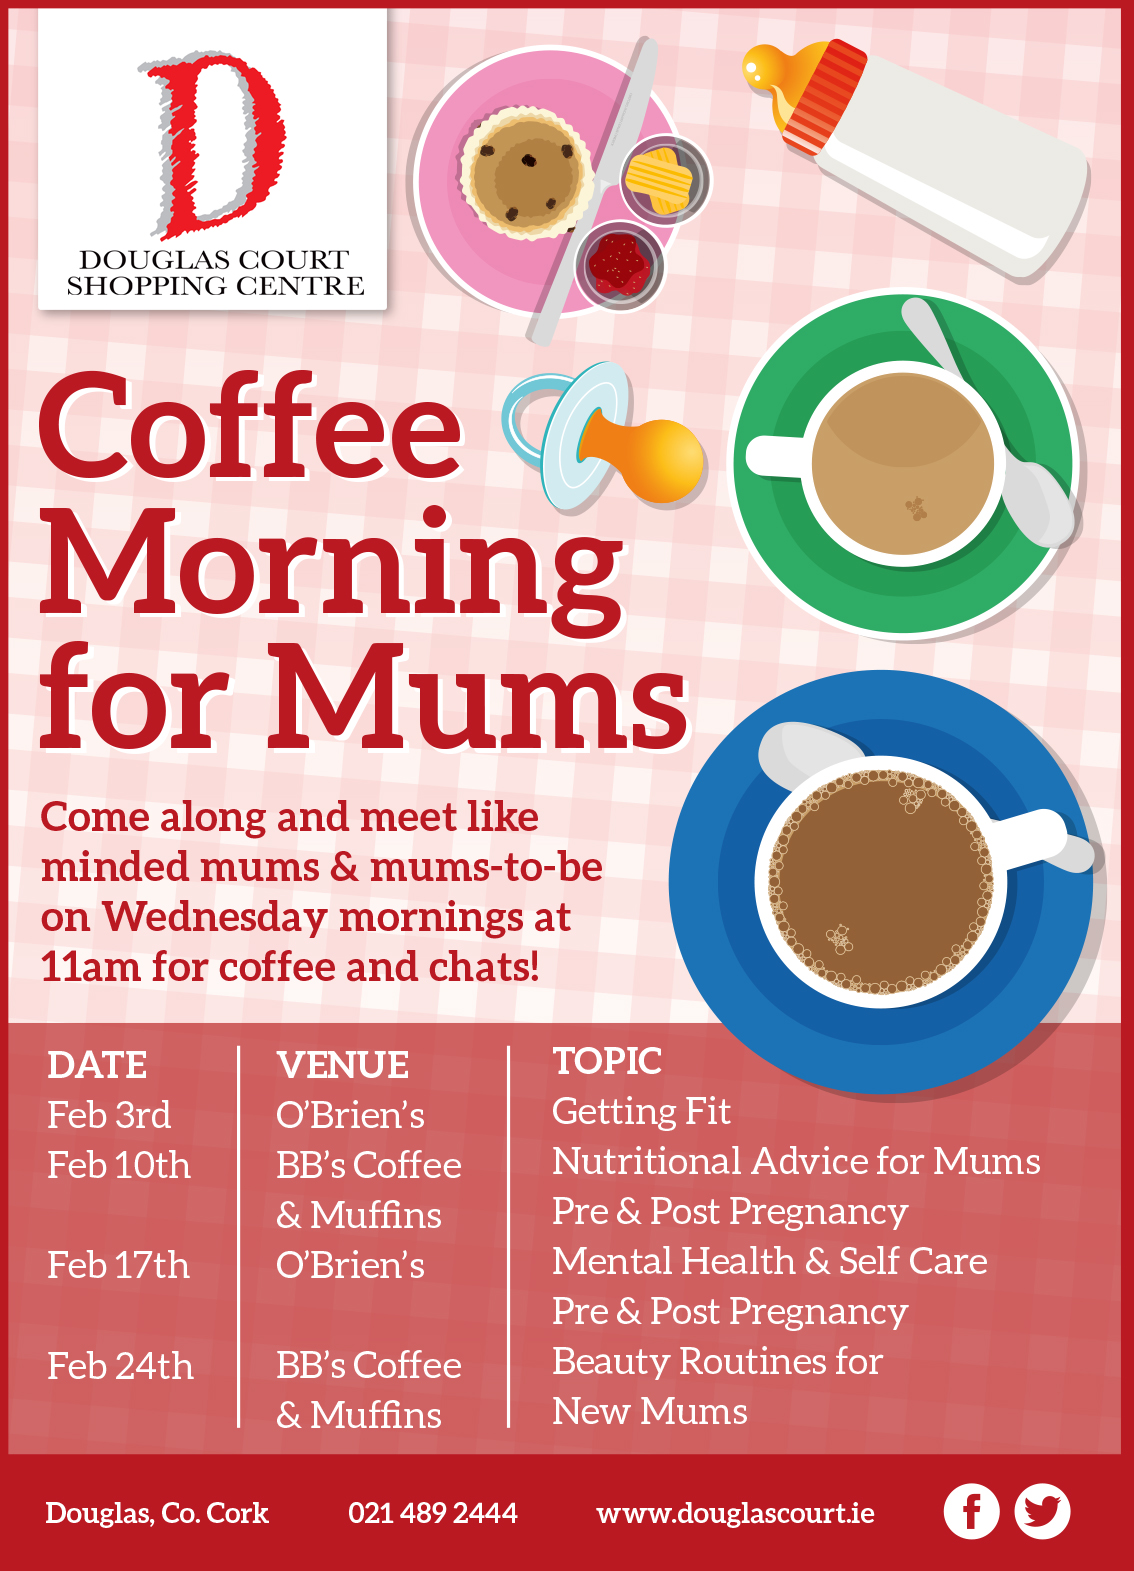 Coffee Morning for Mums Douglas Shopping Centre Cork Ireland 2016 - Parenting